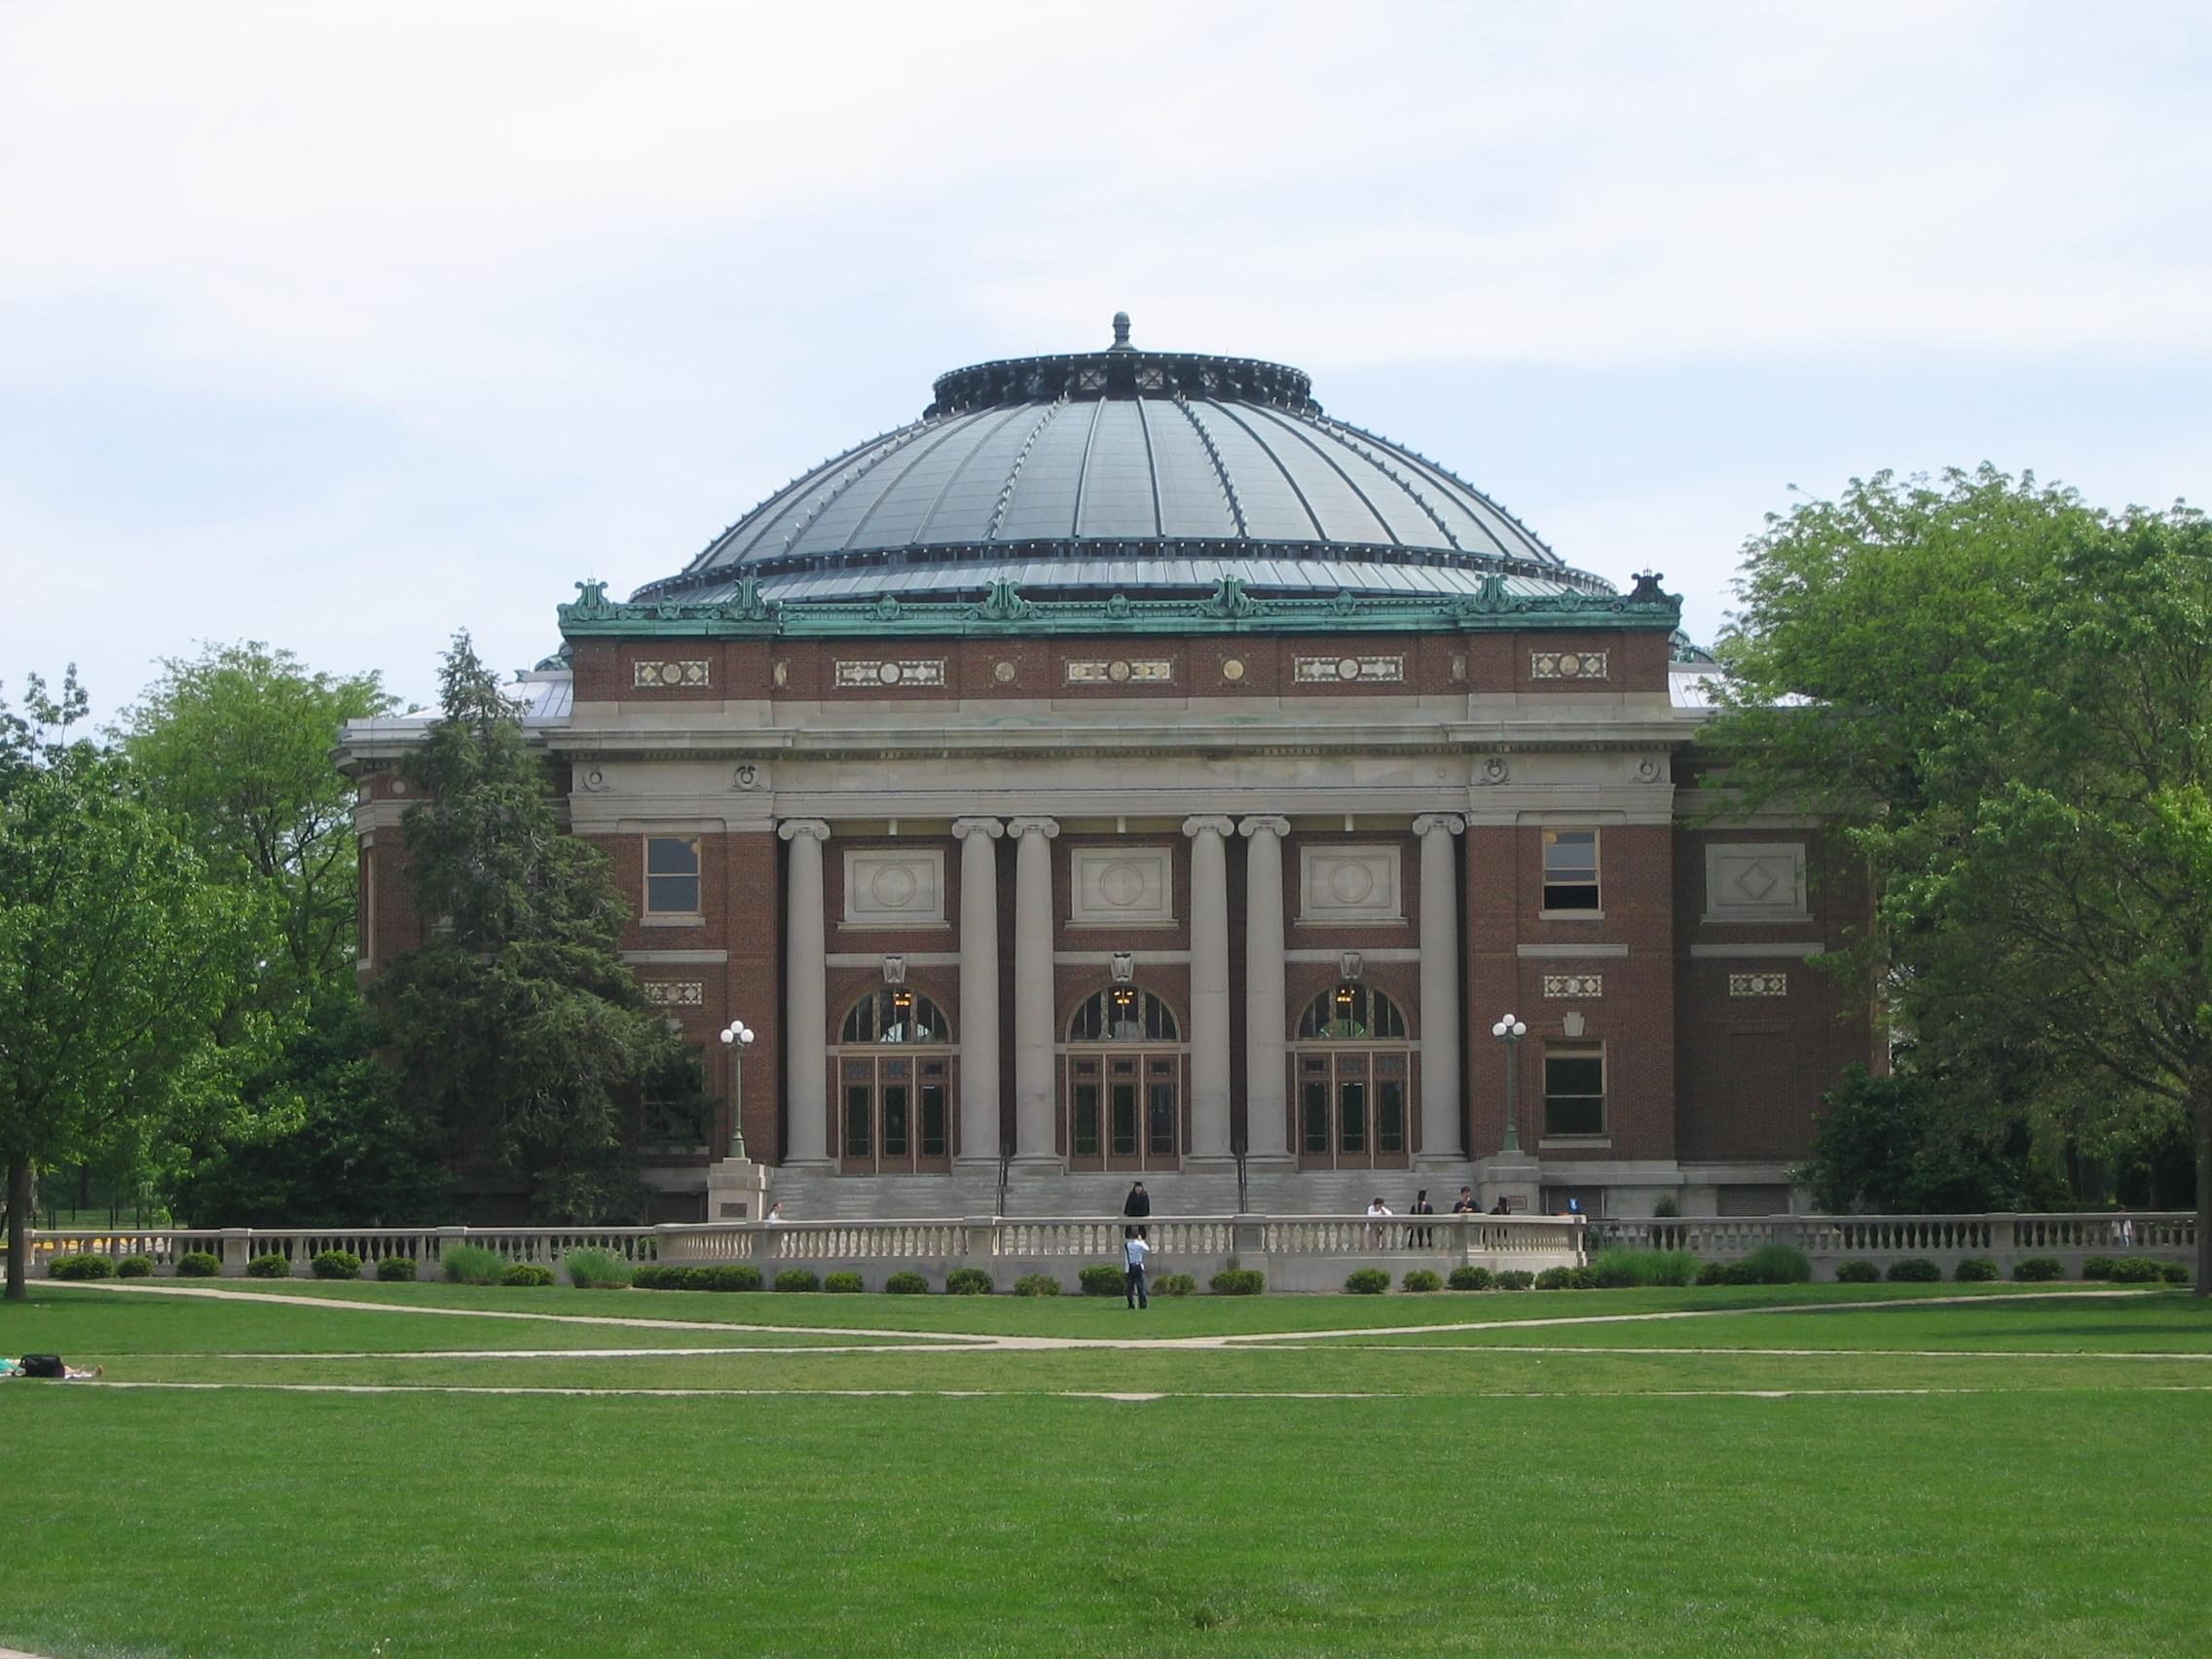 Foellinger Auditorium at the University of Illinois at Urbana-Champaign.